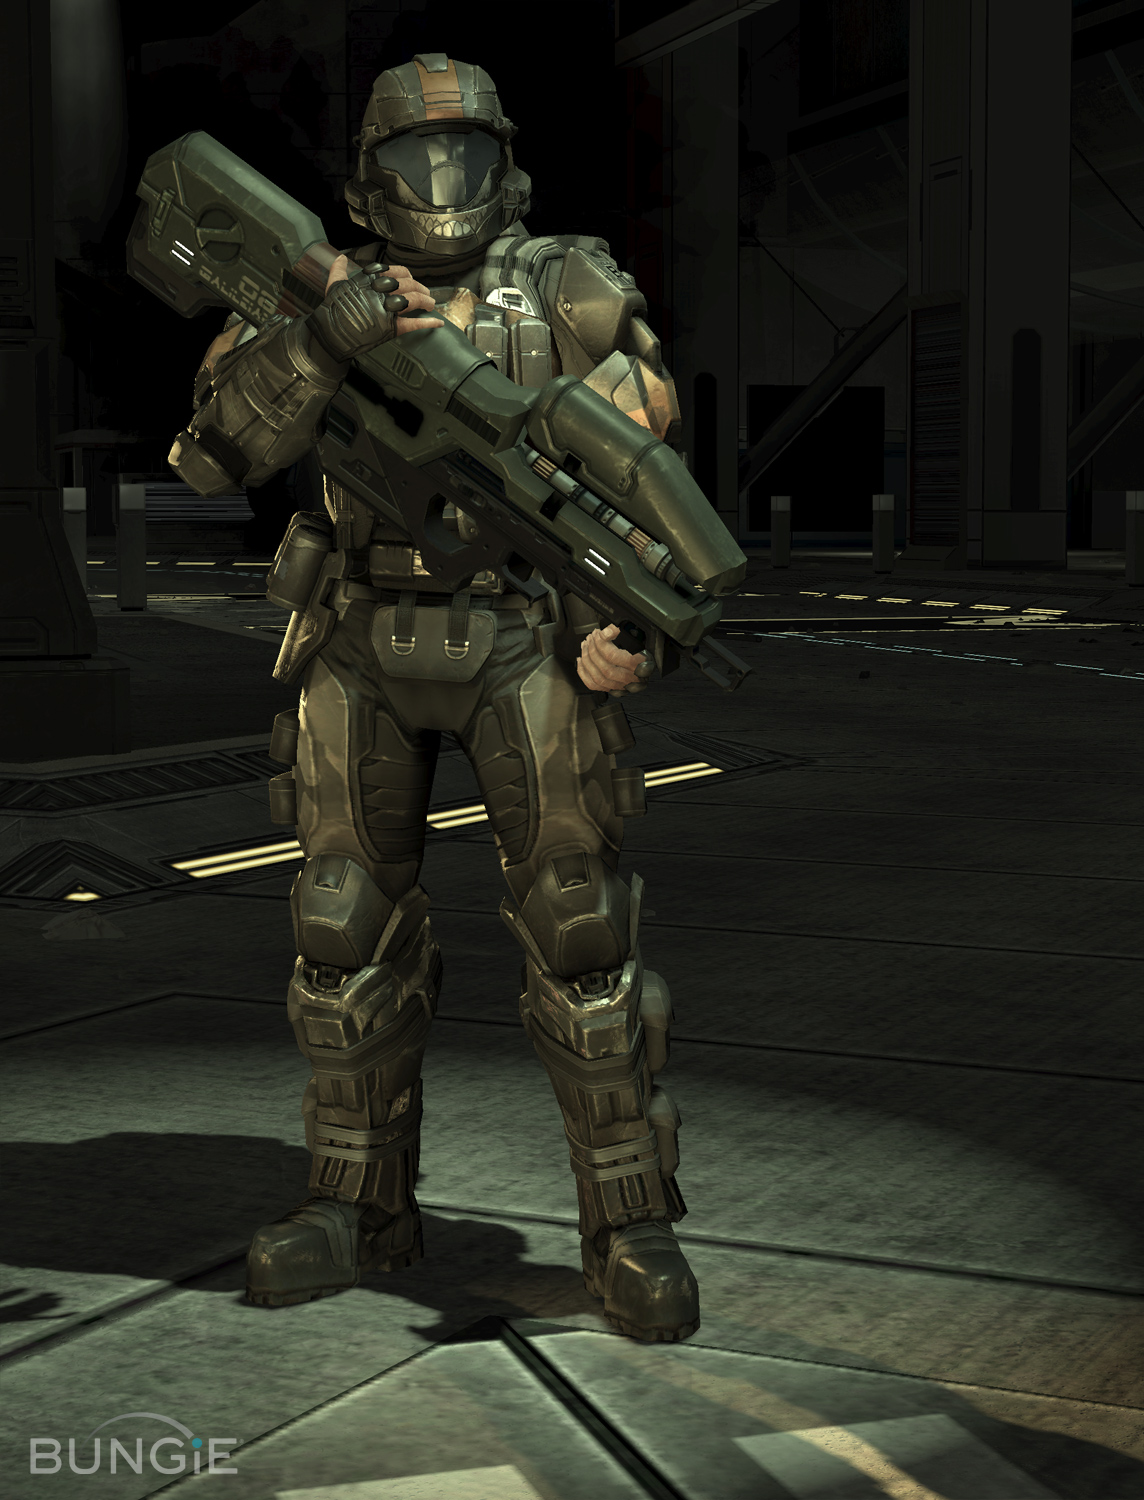 United nations space command unsc skidbladnir crew - Halo odst images ...